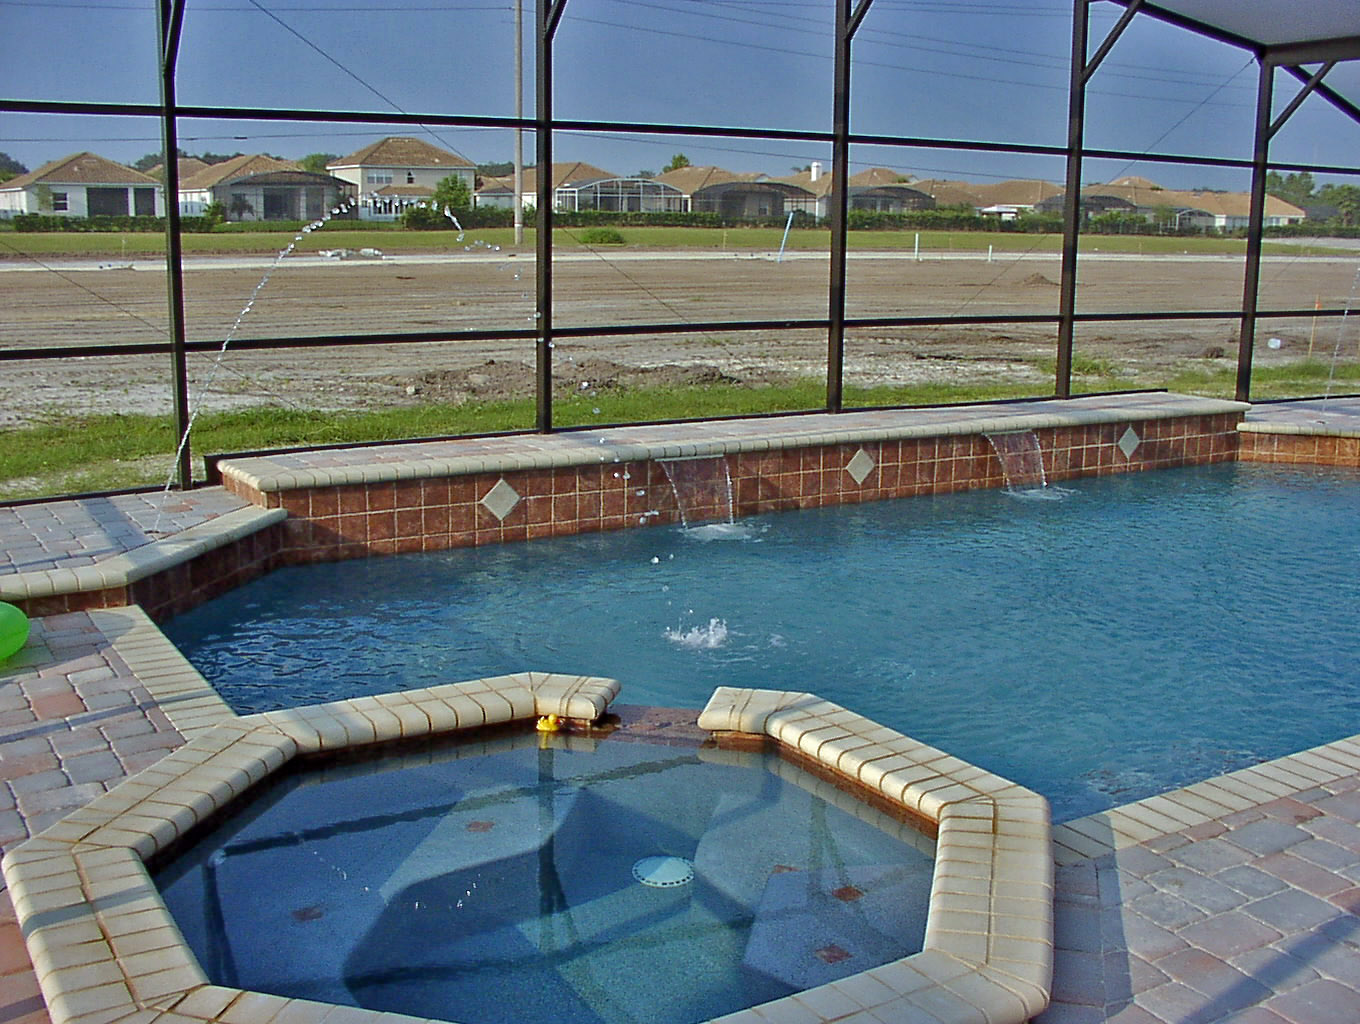 Concrete pools vs fiberglass pools vs vinyl pools Fibreglass pools vs concrete pools